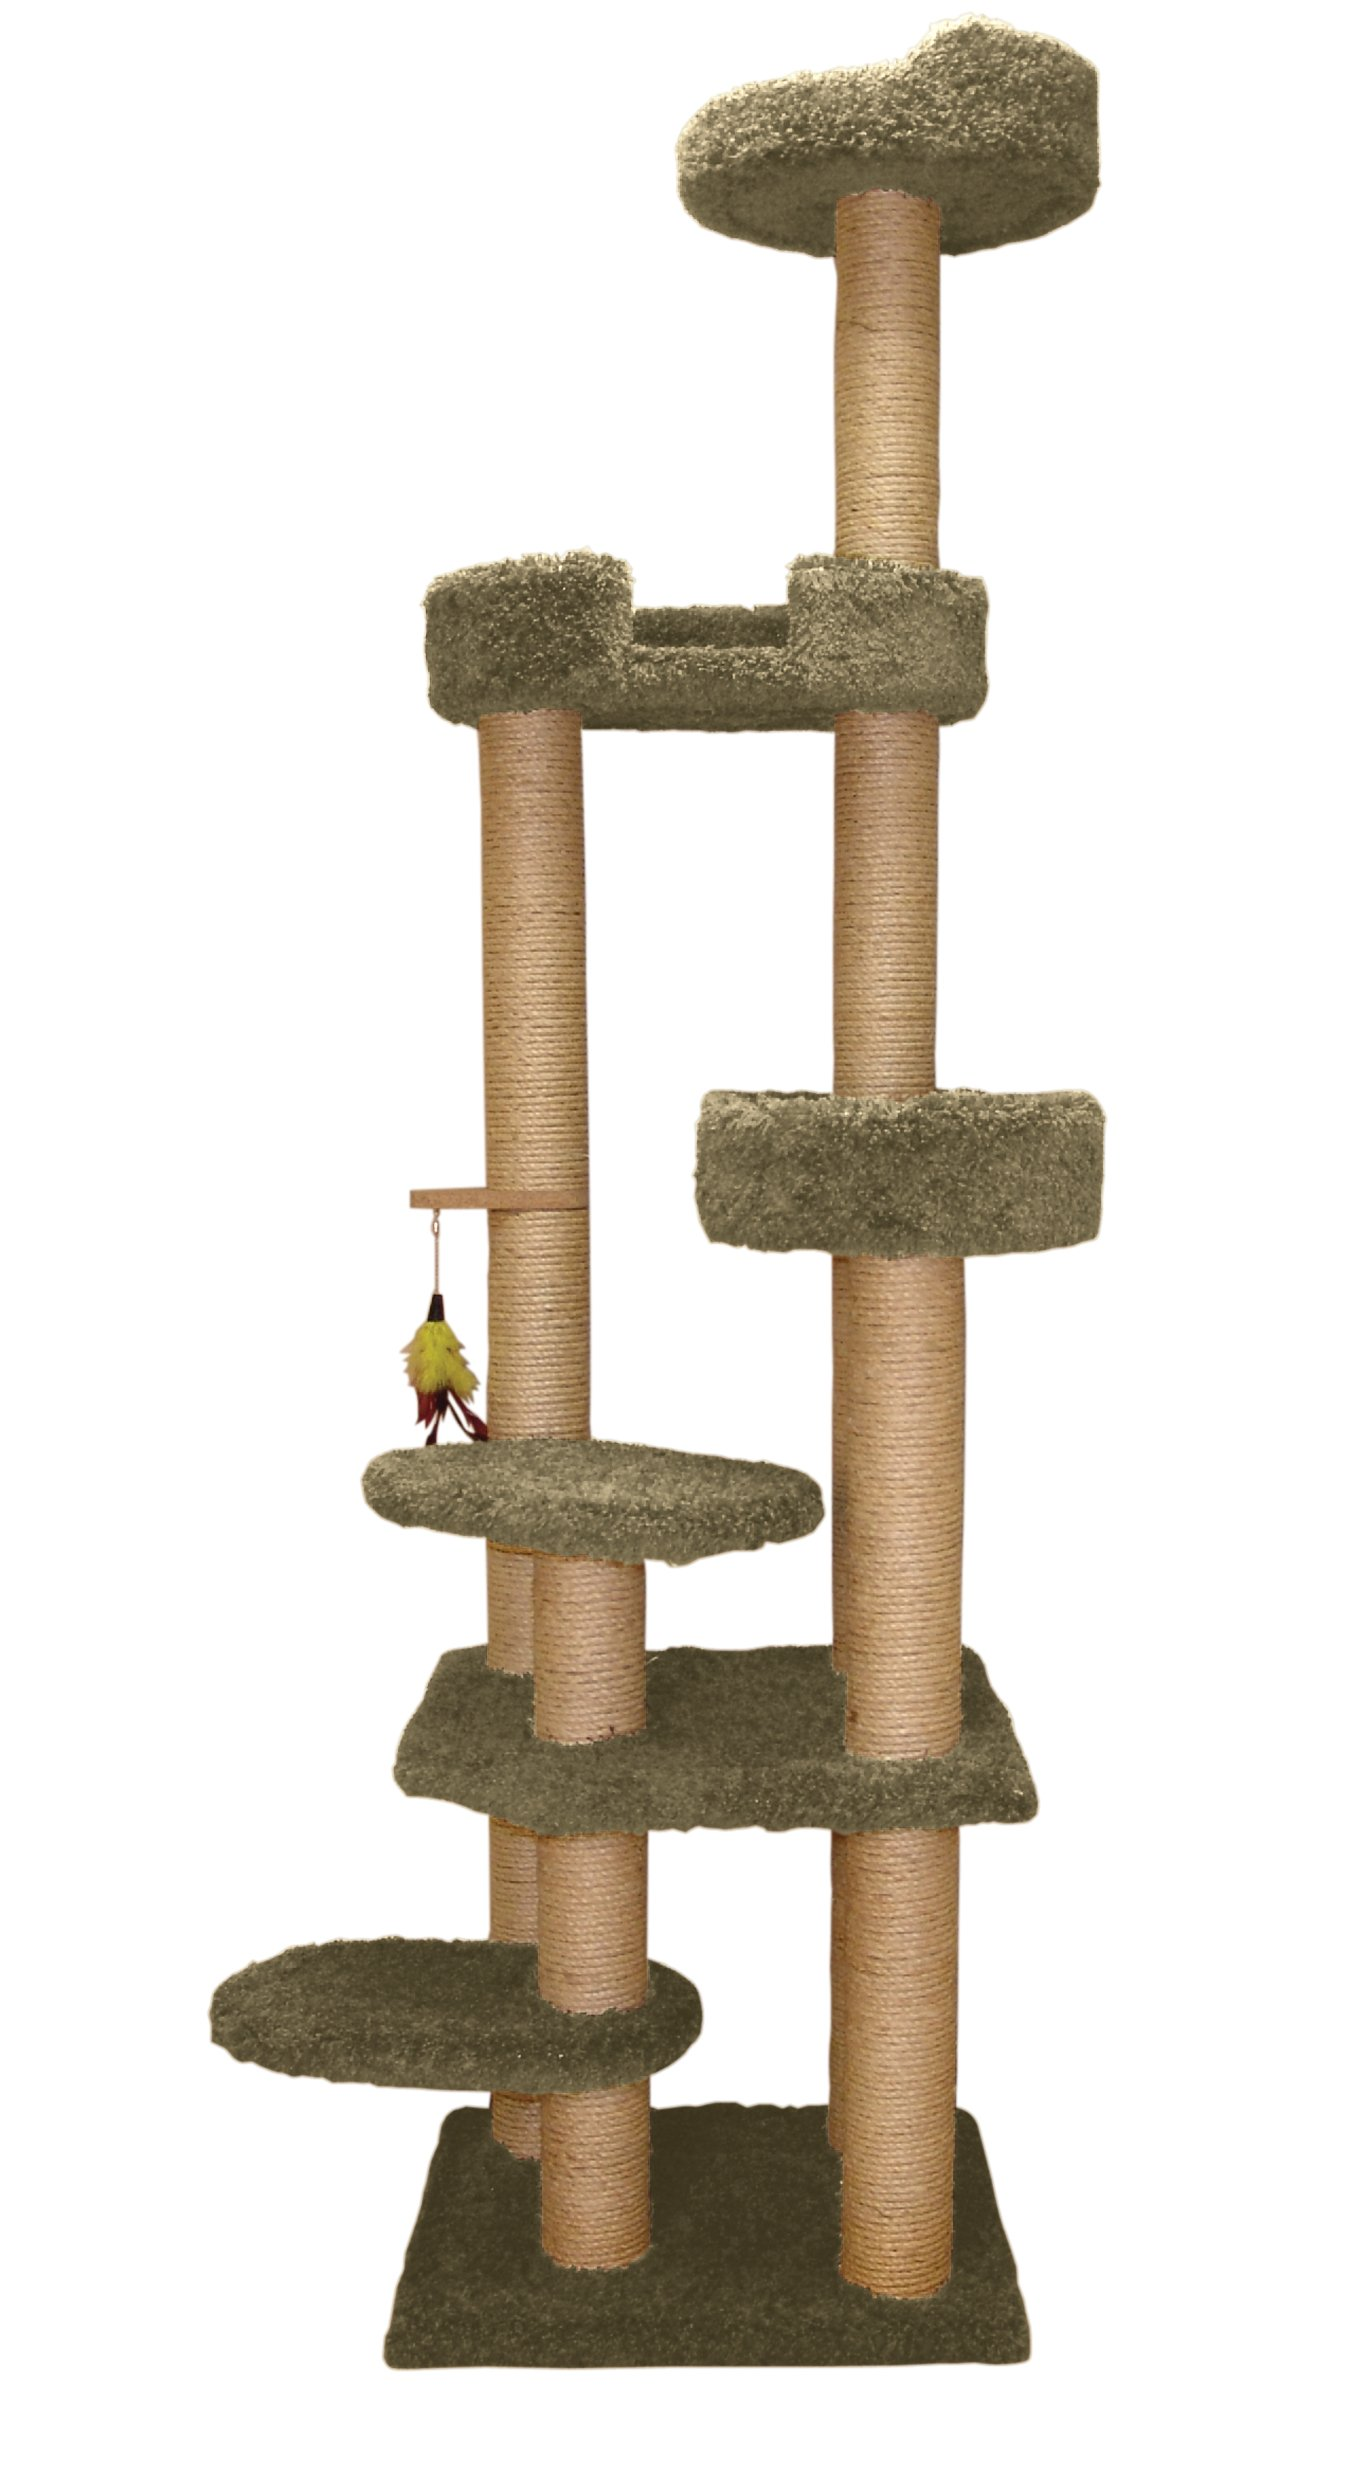 Classy Kitty 79'' Cat Tower with Sky Lounger and Lookout Sage Green 30x27x79